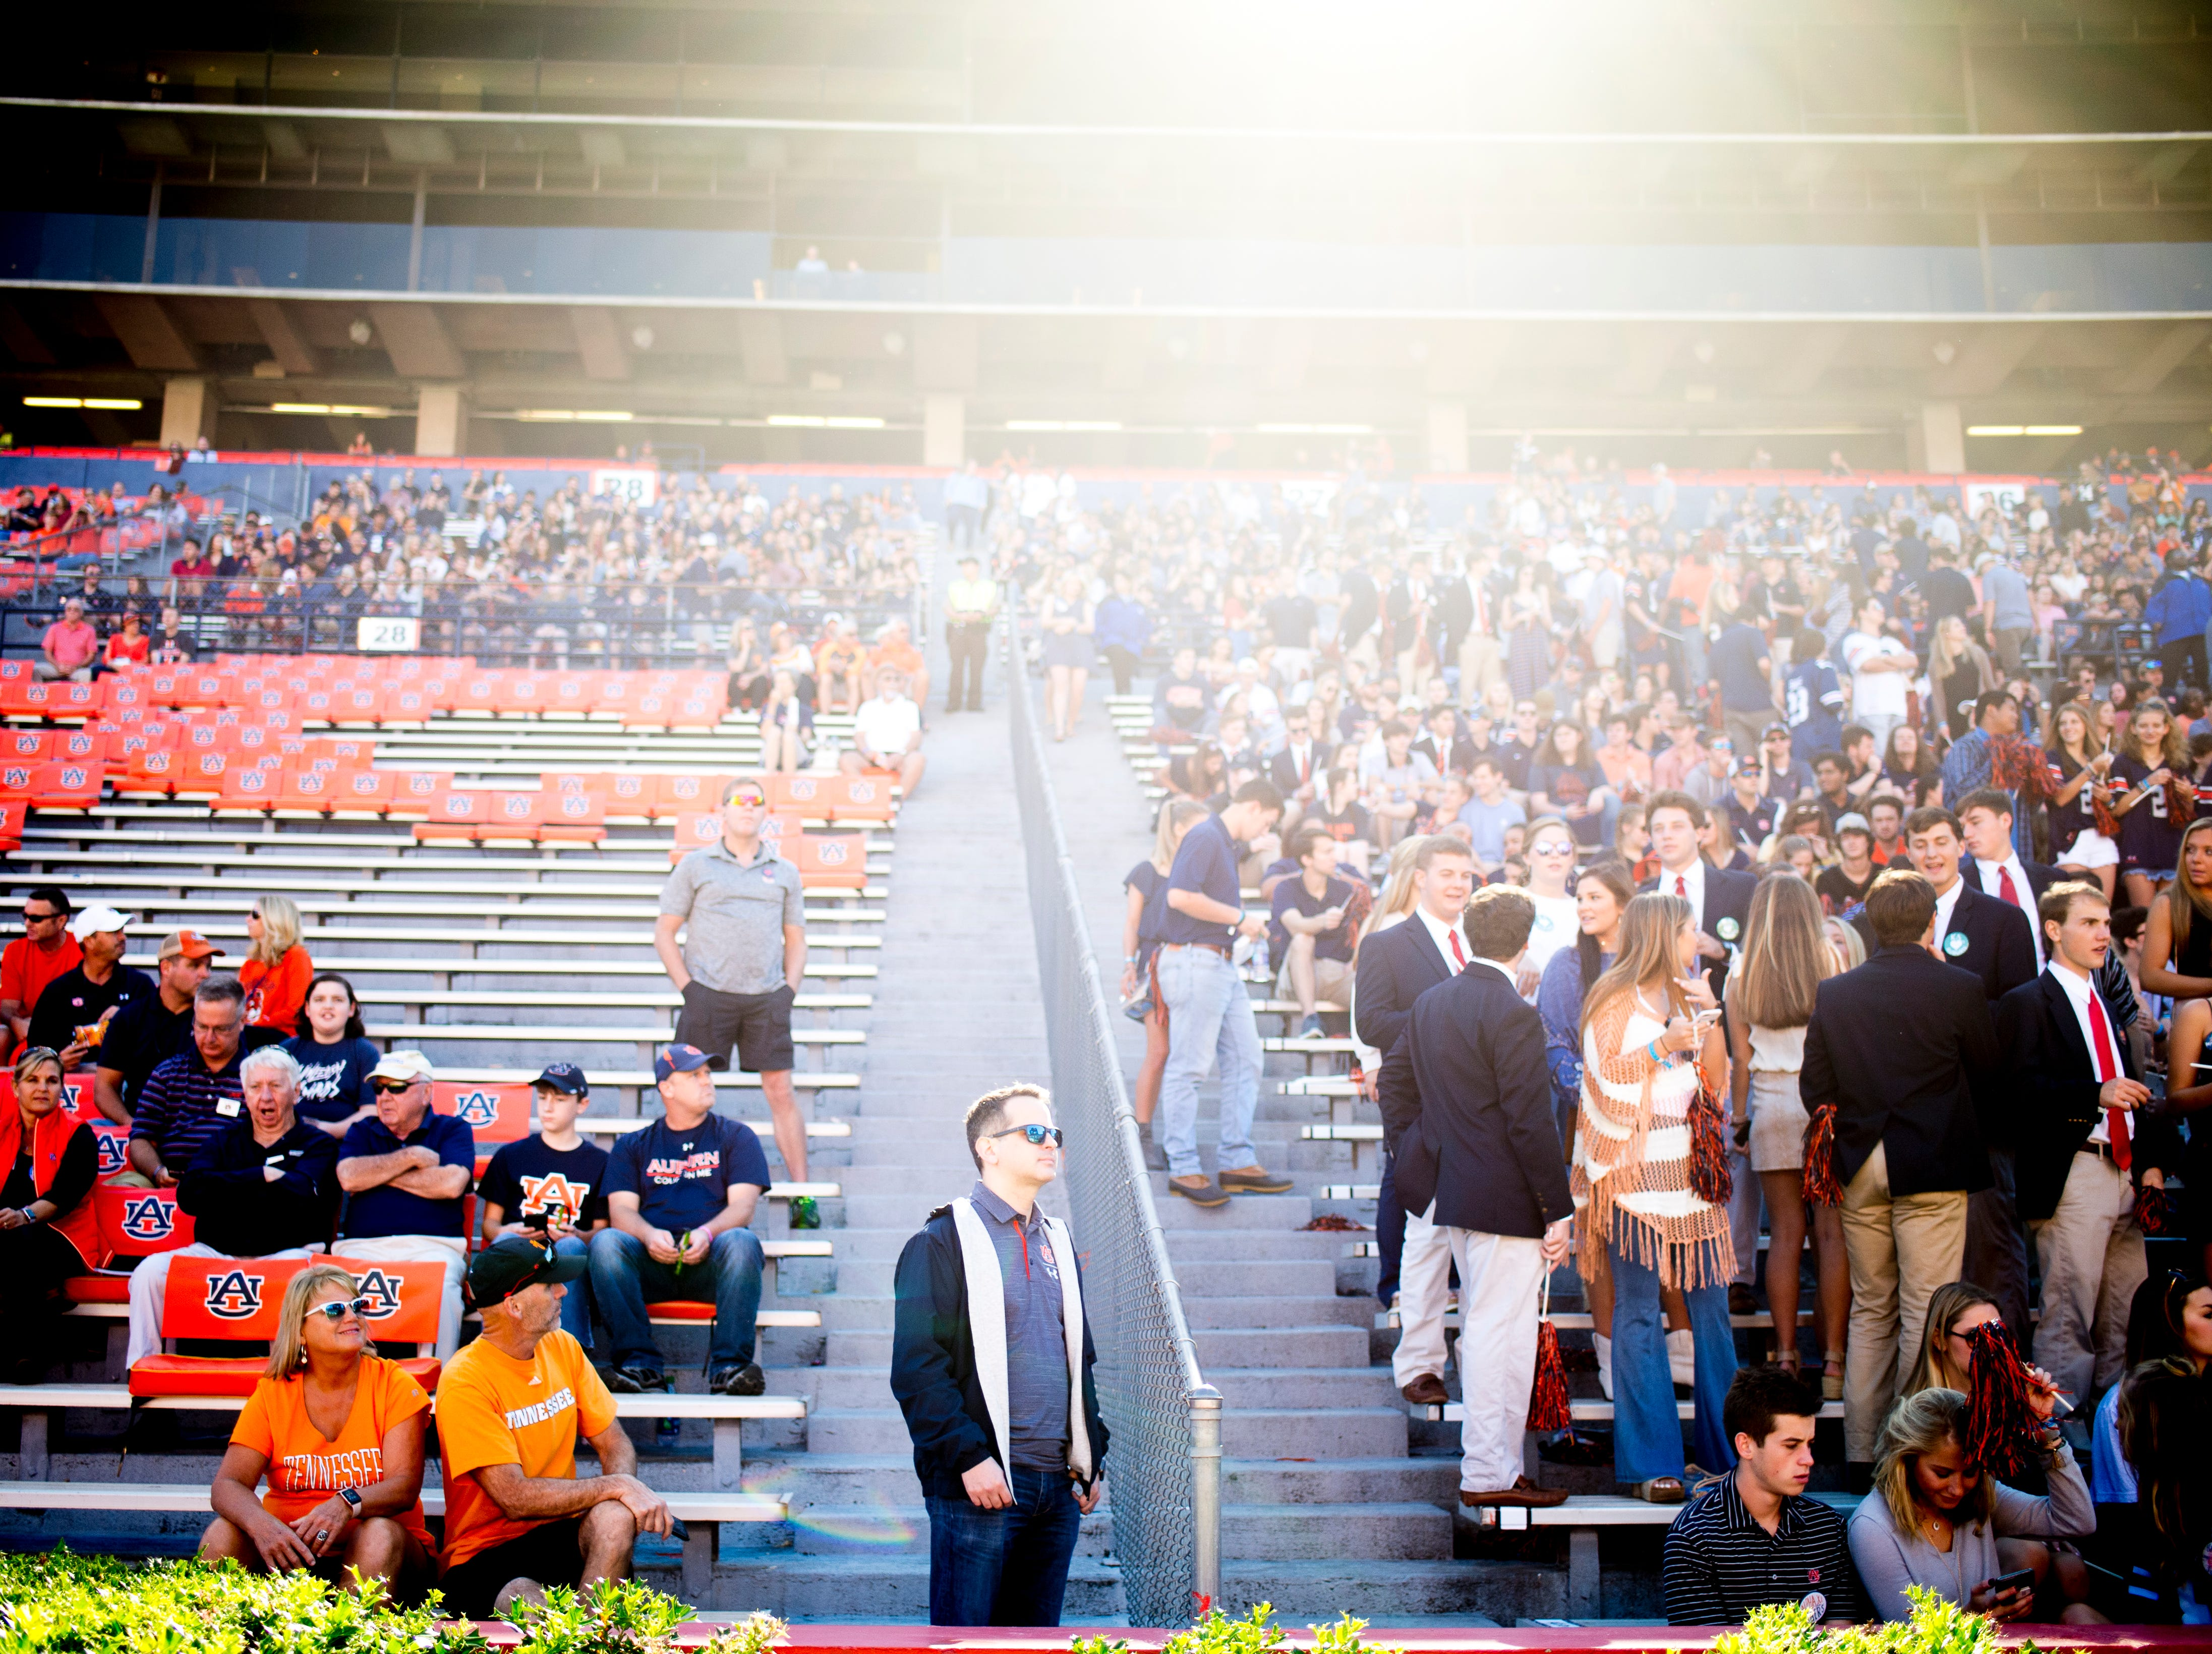 Fans will the stadium during a game between Tennessee and Auburn at Jordan-Hare Stadium in Auburn, Alabama on Saturday, October 13, 2018.